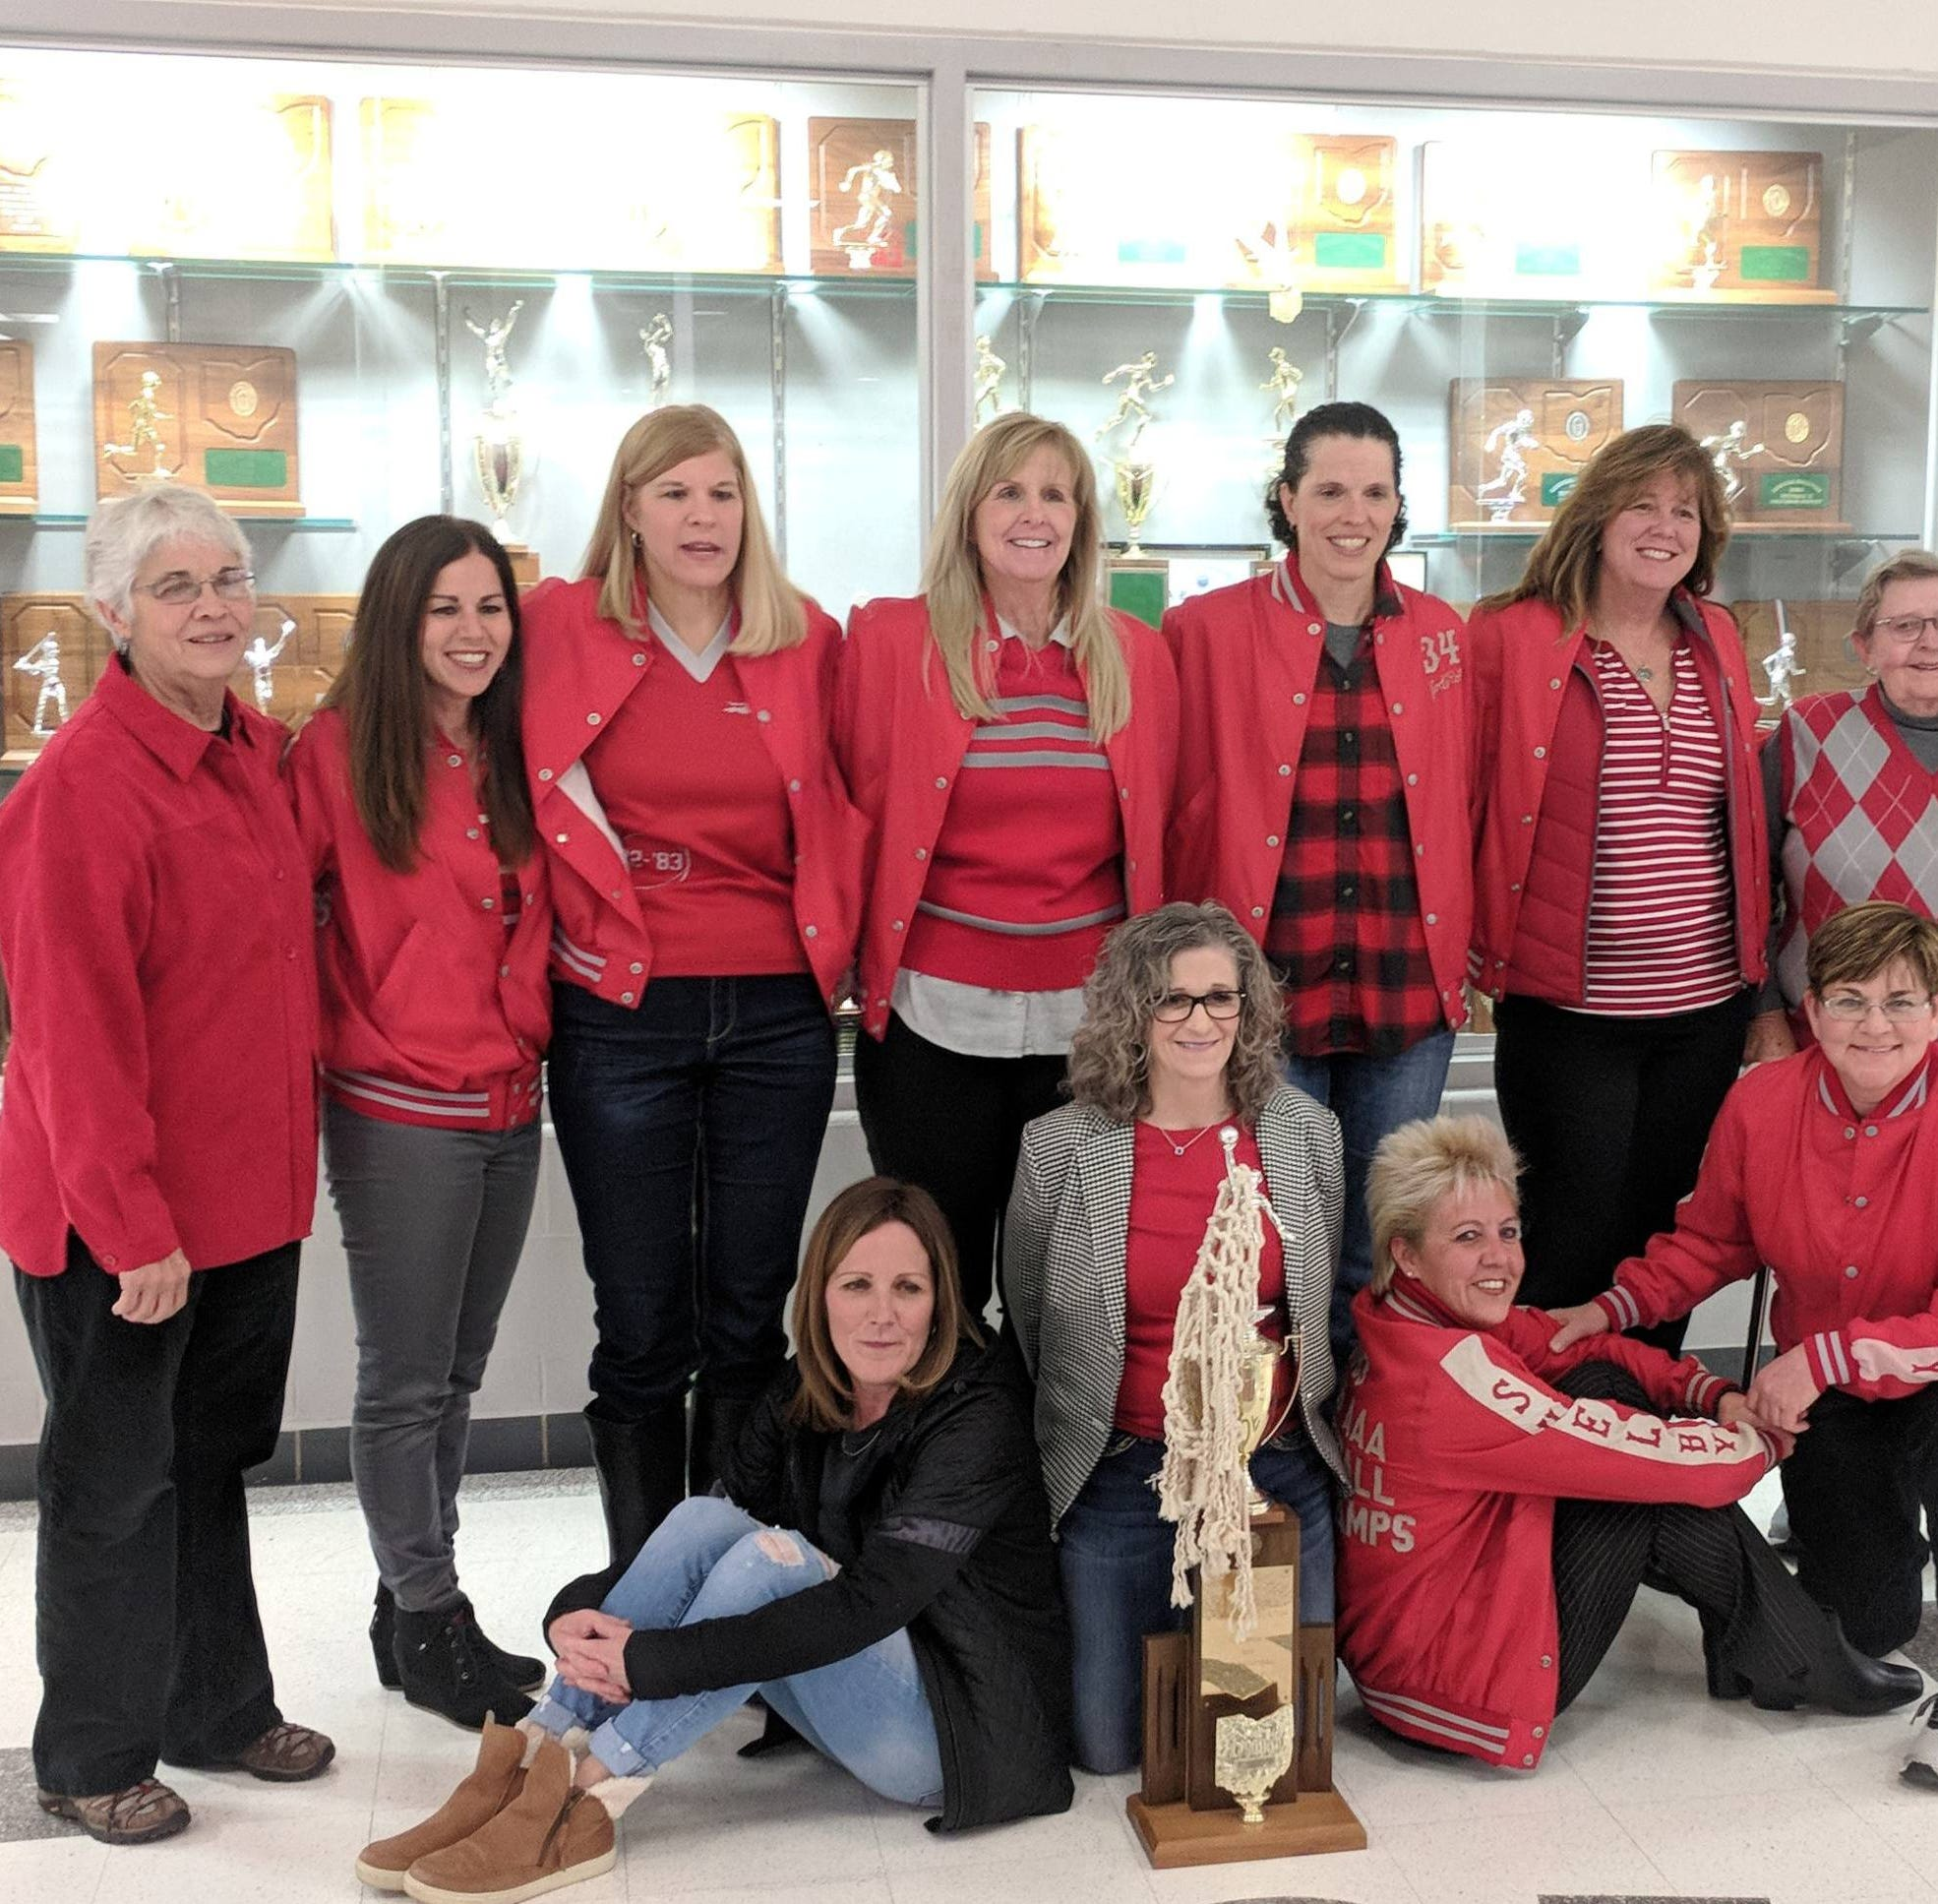 Welcome back: Shelby honors 1983 girls basketball state championship team in style